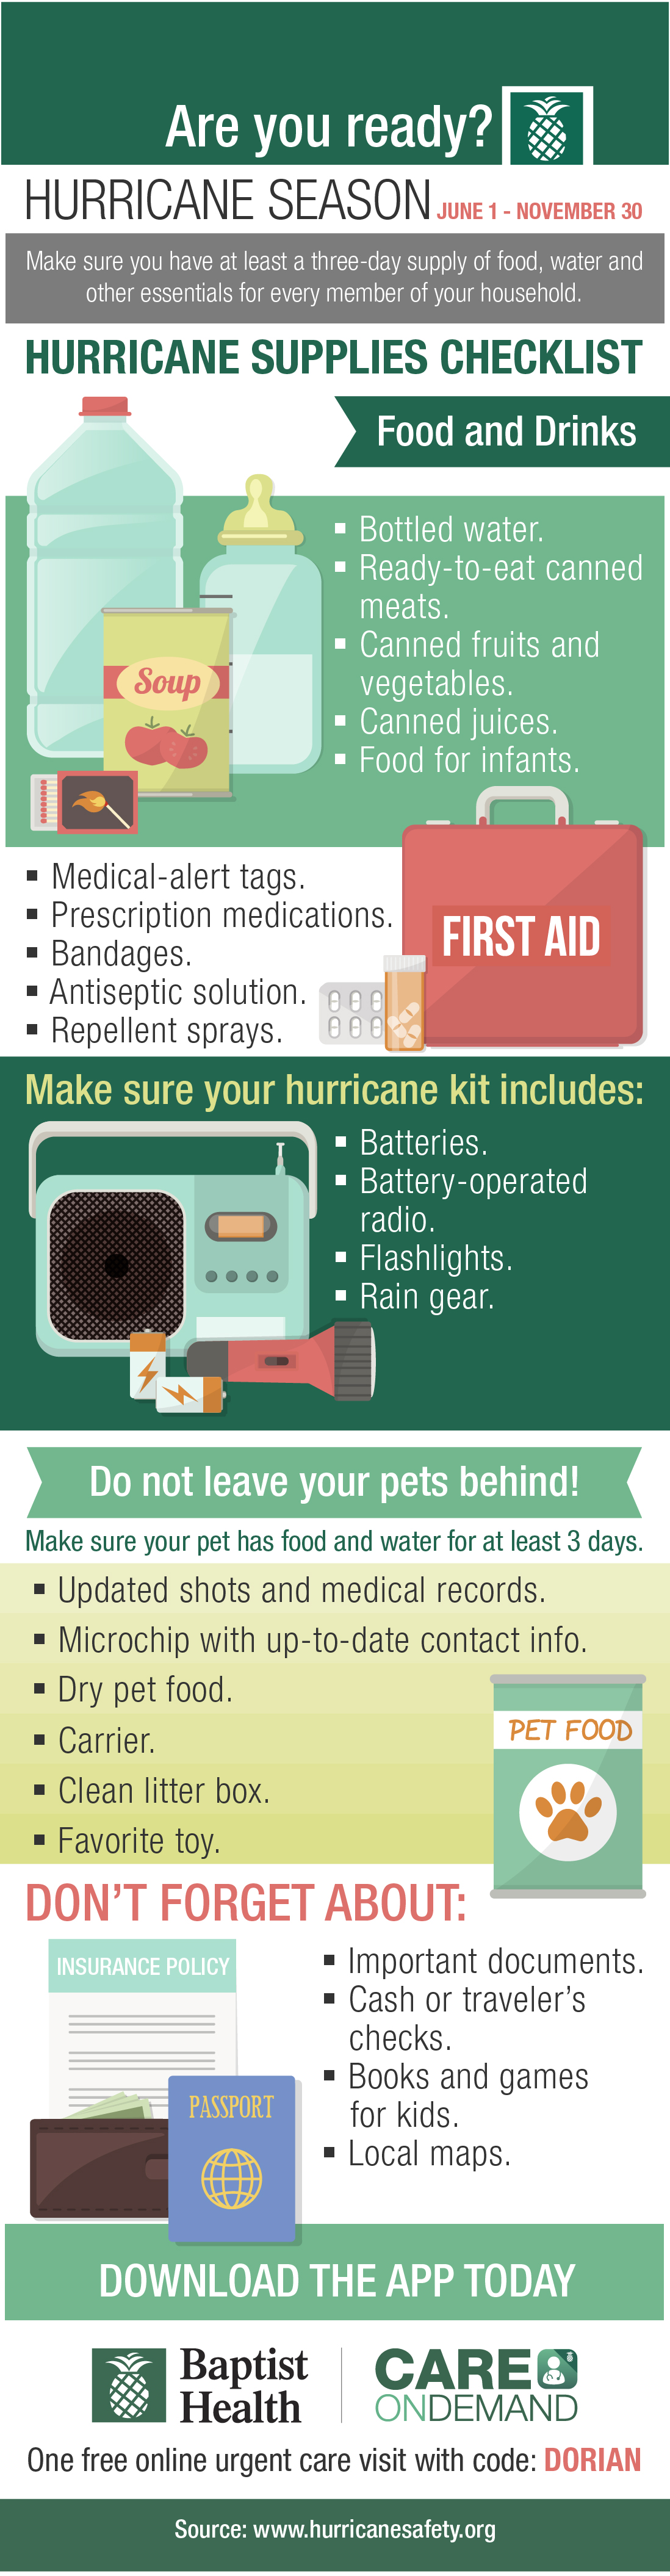 Hurricane Preparedness: Here's What You Need to be Ready